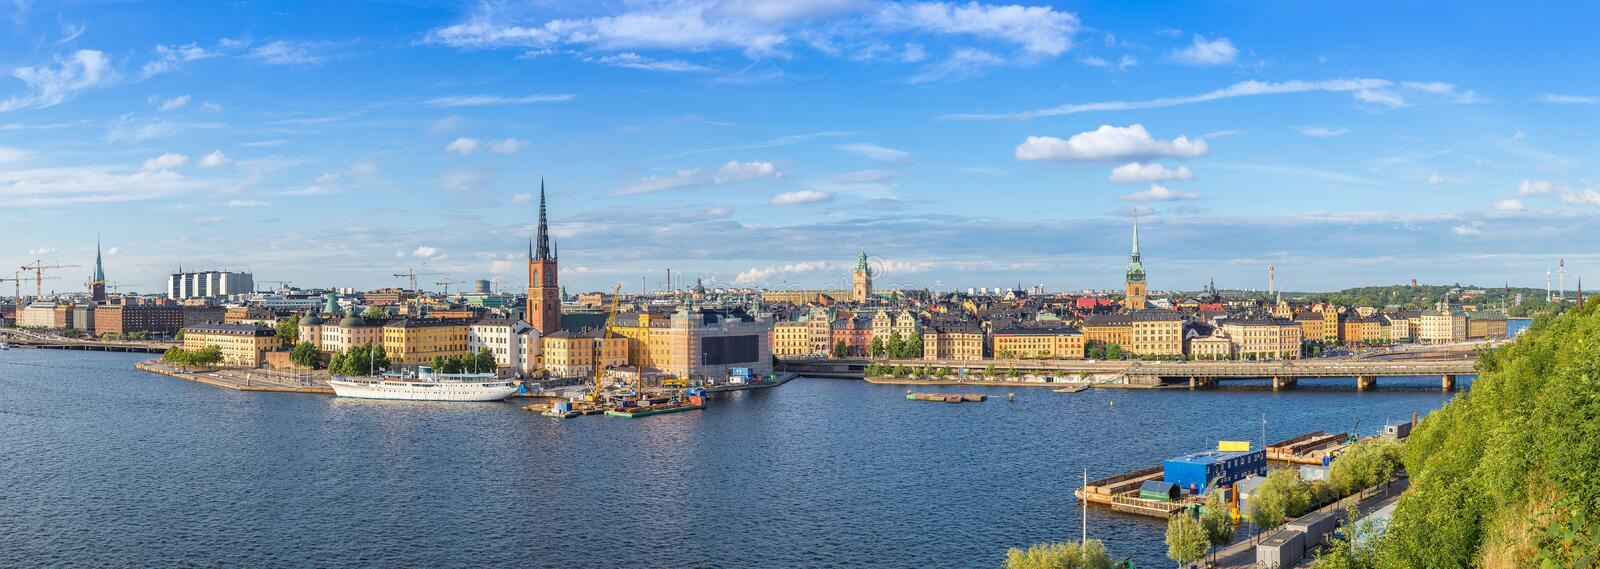 Ppanorama of the Old Town (Gamla Stan) in Stockholm, Sweden royalty free stock image